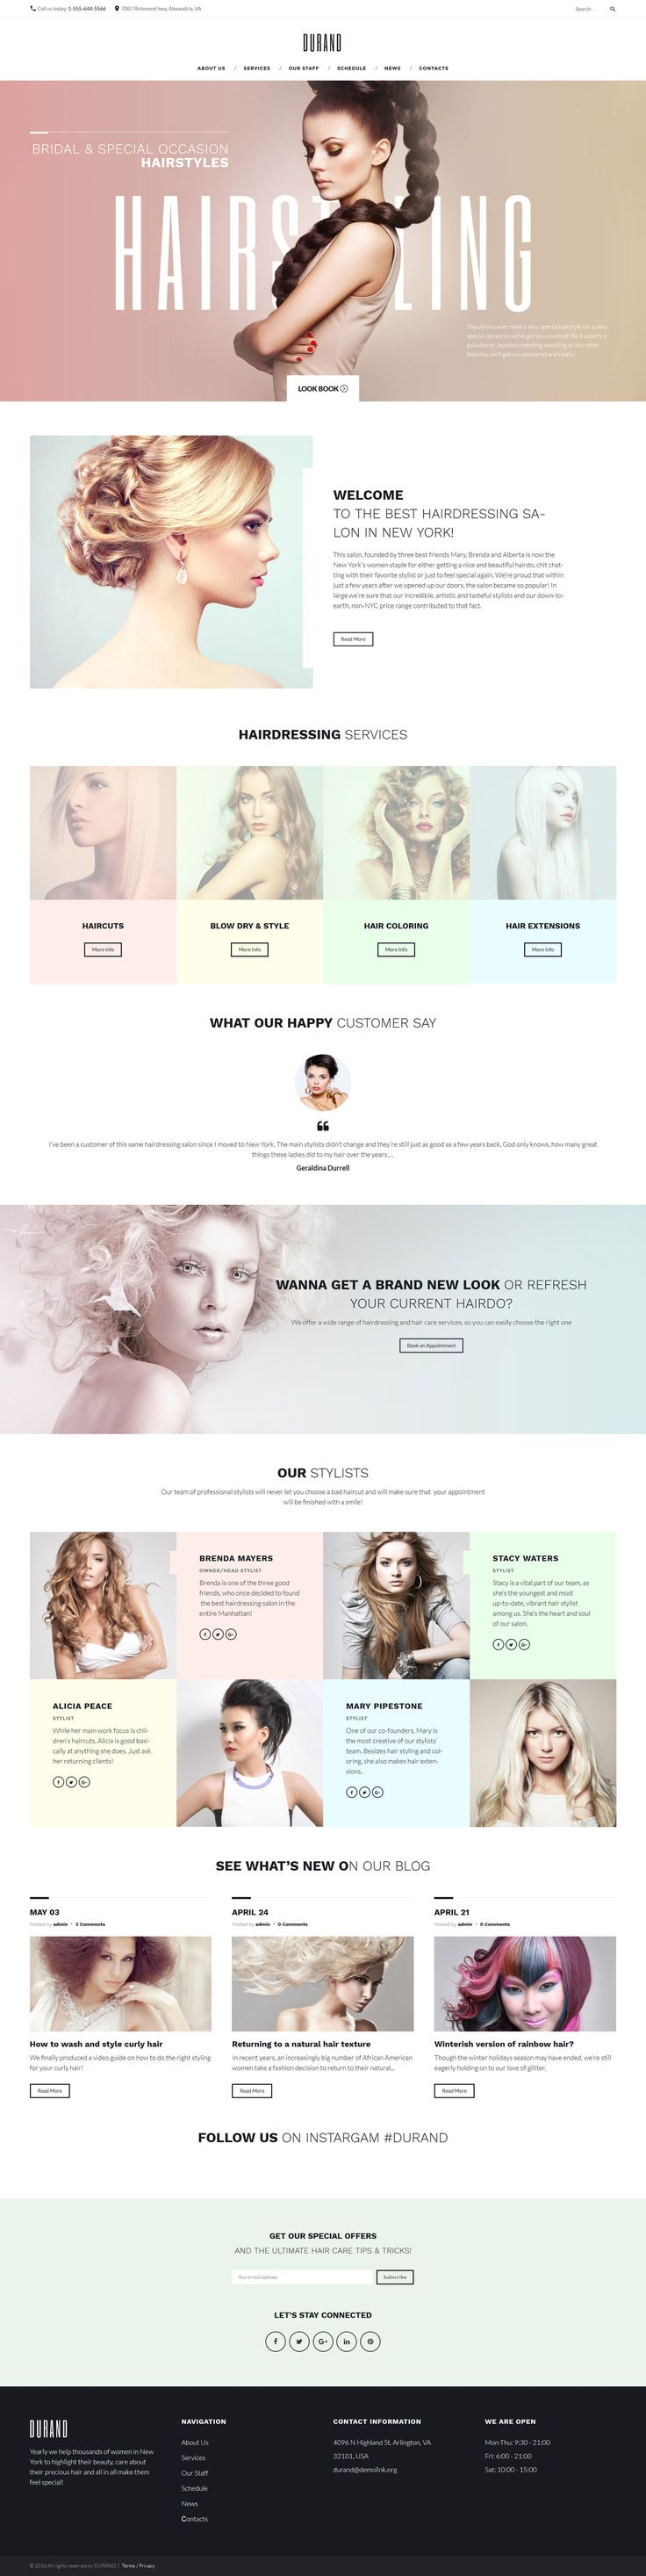 Durand WordPress Theme http://www.templatemonster.com/wordpress-themes/durand-wordpress-theme-58991.html